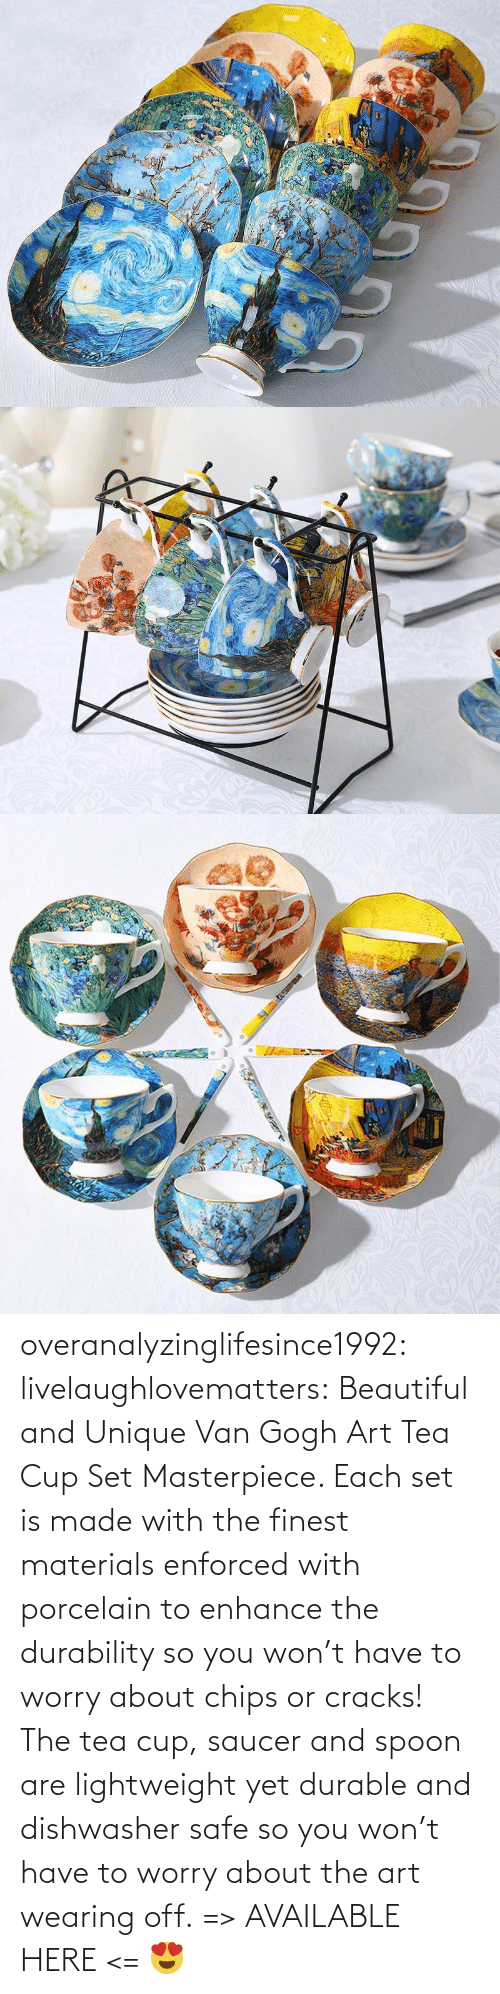 chips: overanalyzinglifesince1992: livelaughlovematters:  Beautiful and Unique Van Gogh Art Tea Cup Set Masterpiece. Each set is made with the finest materials enforced with porcelain to enhance the durability so you won't have to worry about chips or cracks! The tea cup, saucer and spoon are lightweight yet durable and dishwasher safe so you won't have to worry about the art wearing off. => AVAILABLE HERE <=    😍